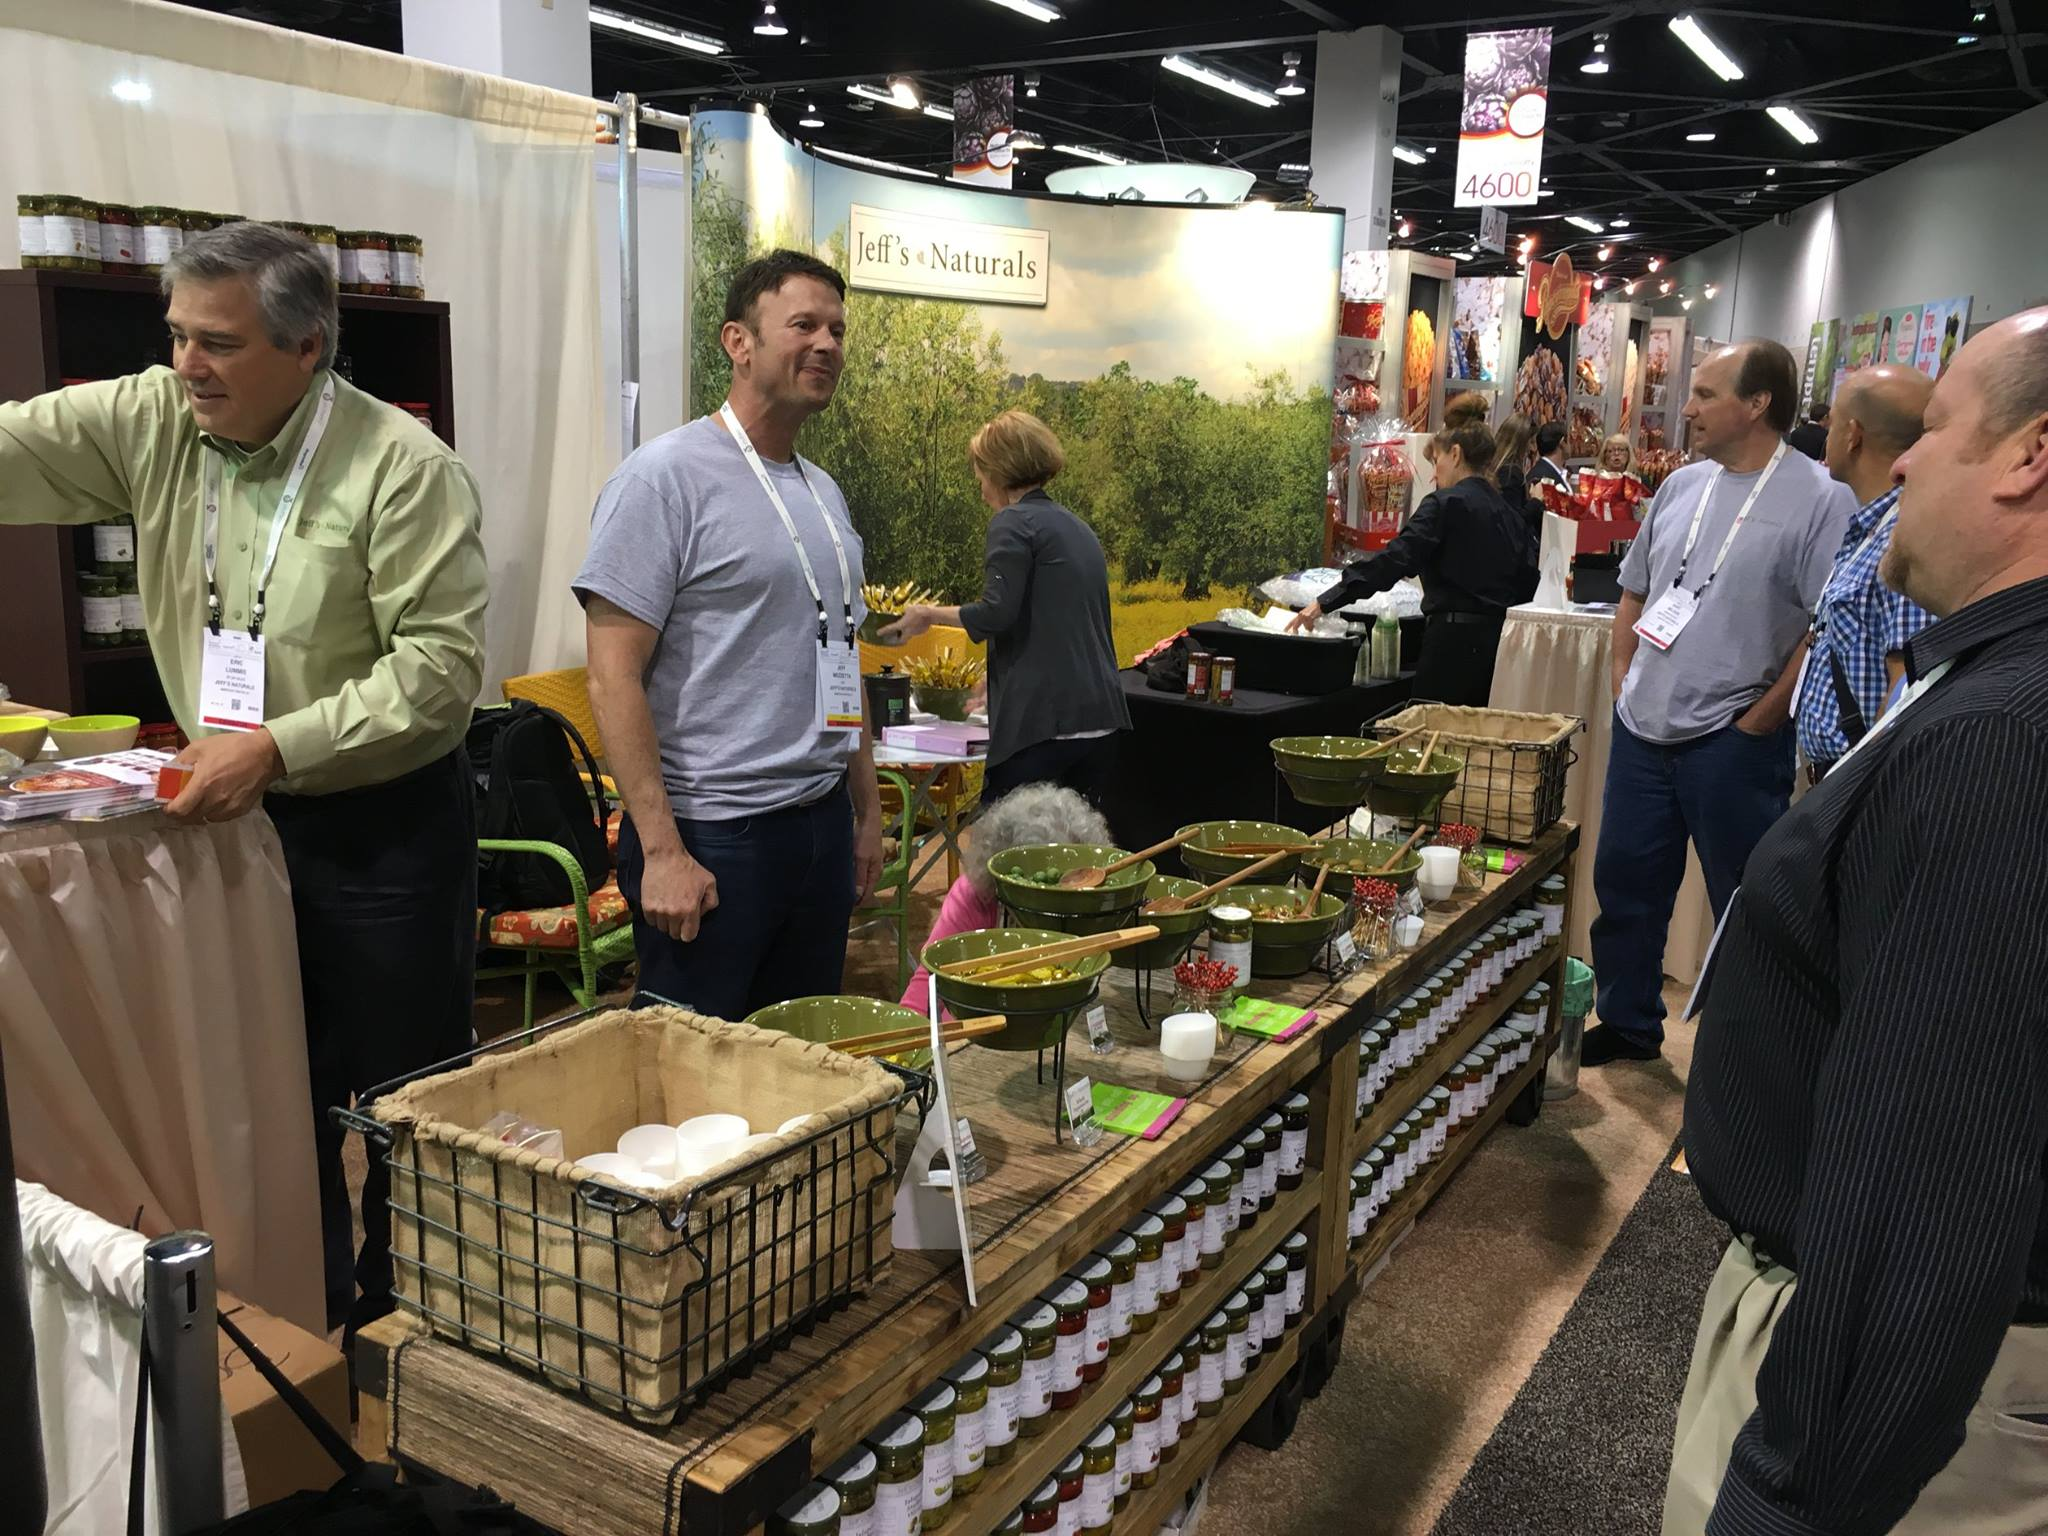 Jeff's Naturals Booth at Expo West